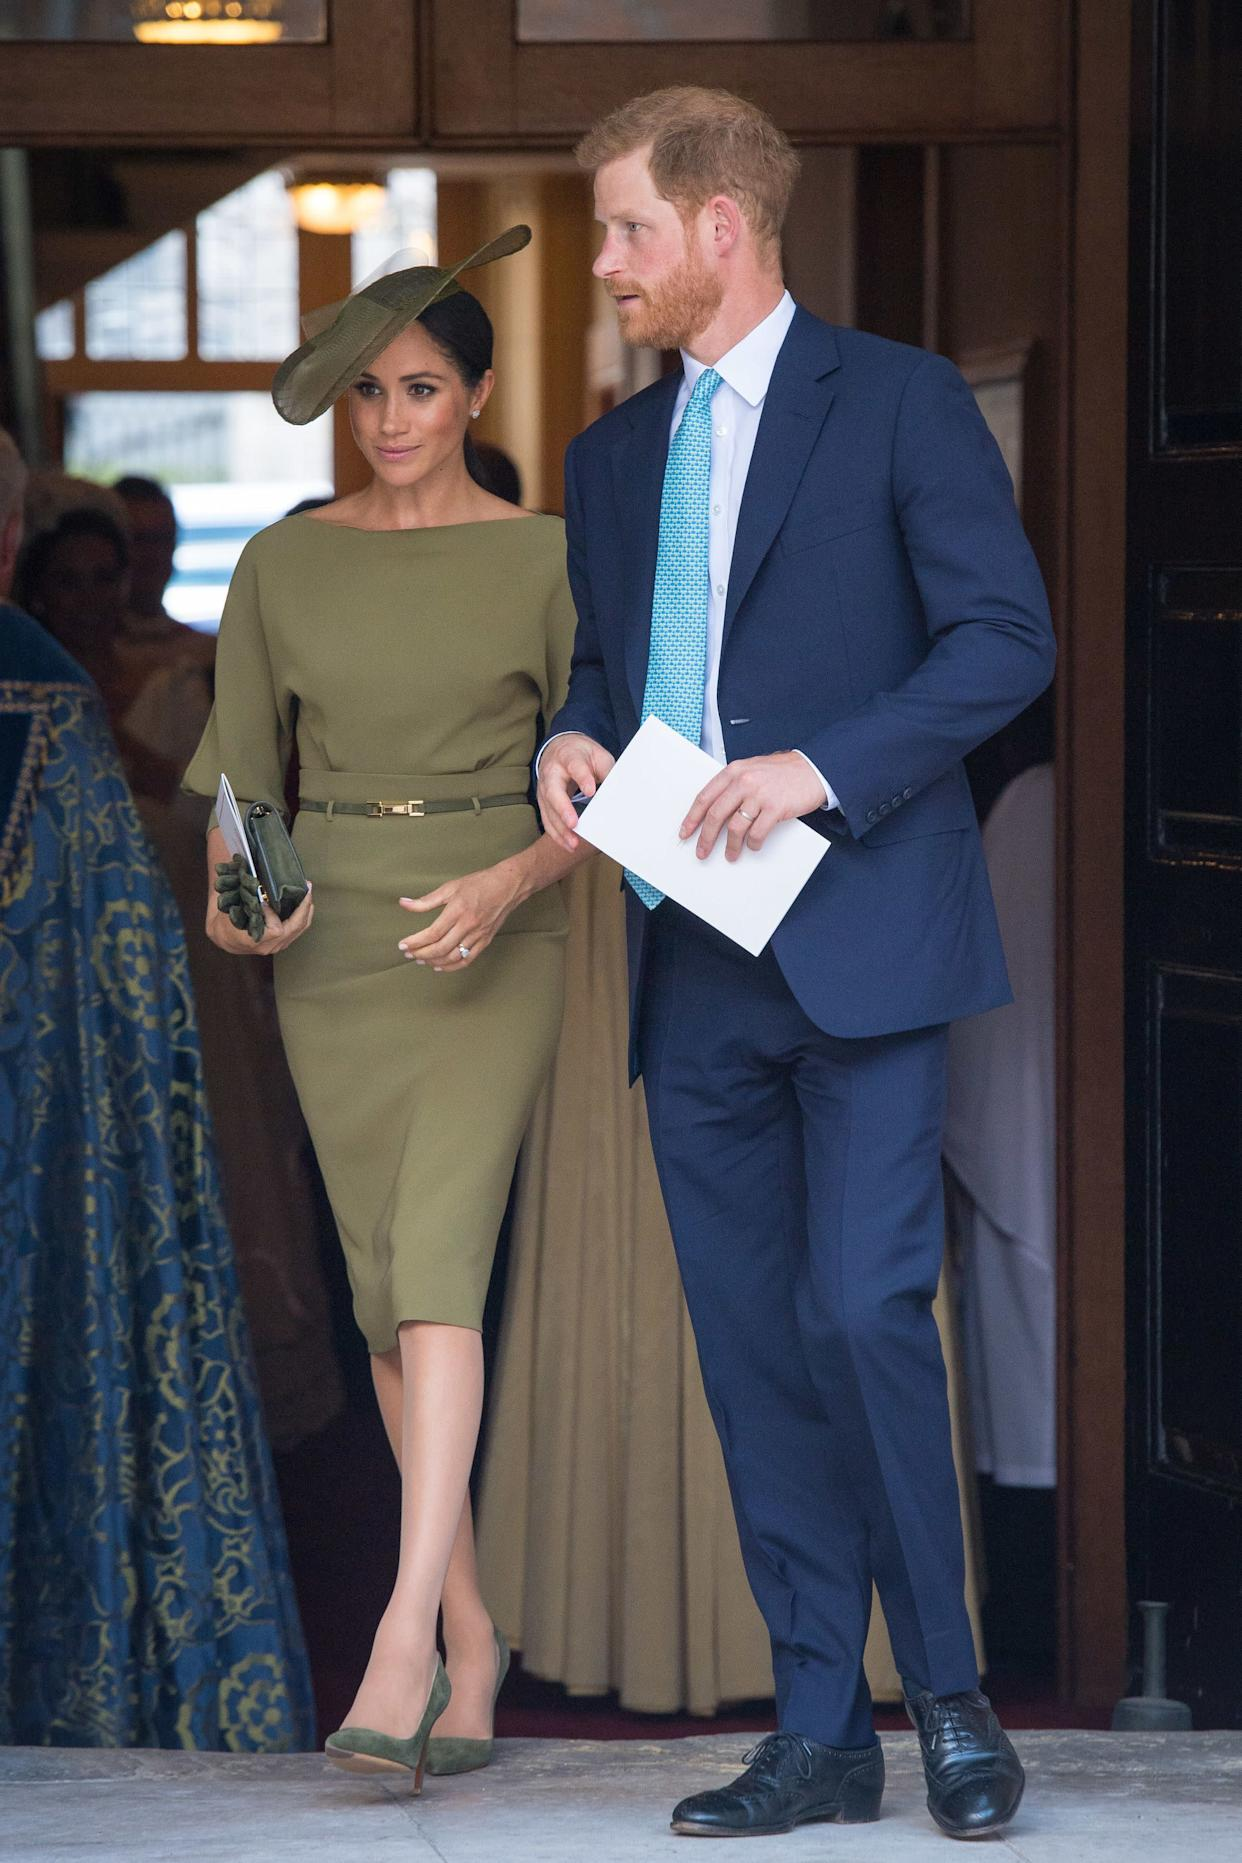 The Duke and Duchess of Sussex depart after attending the christening of Prince Louis at the Chapel Royal, St James's Palace, on July 9 in London.